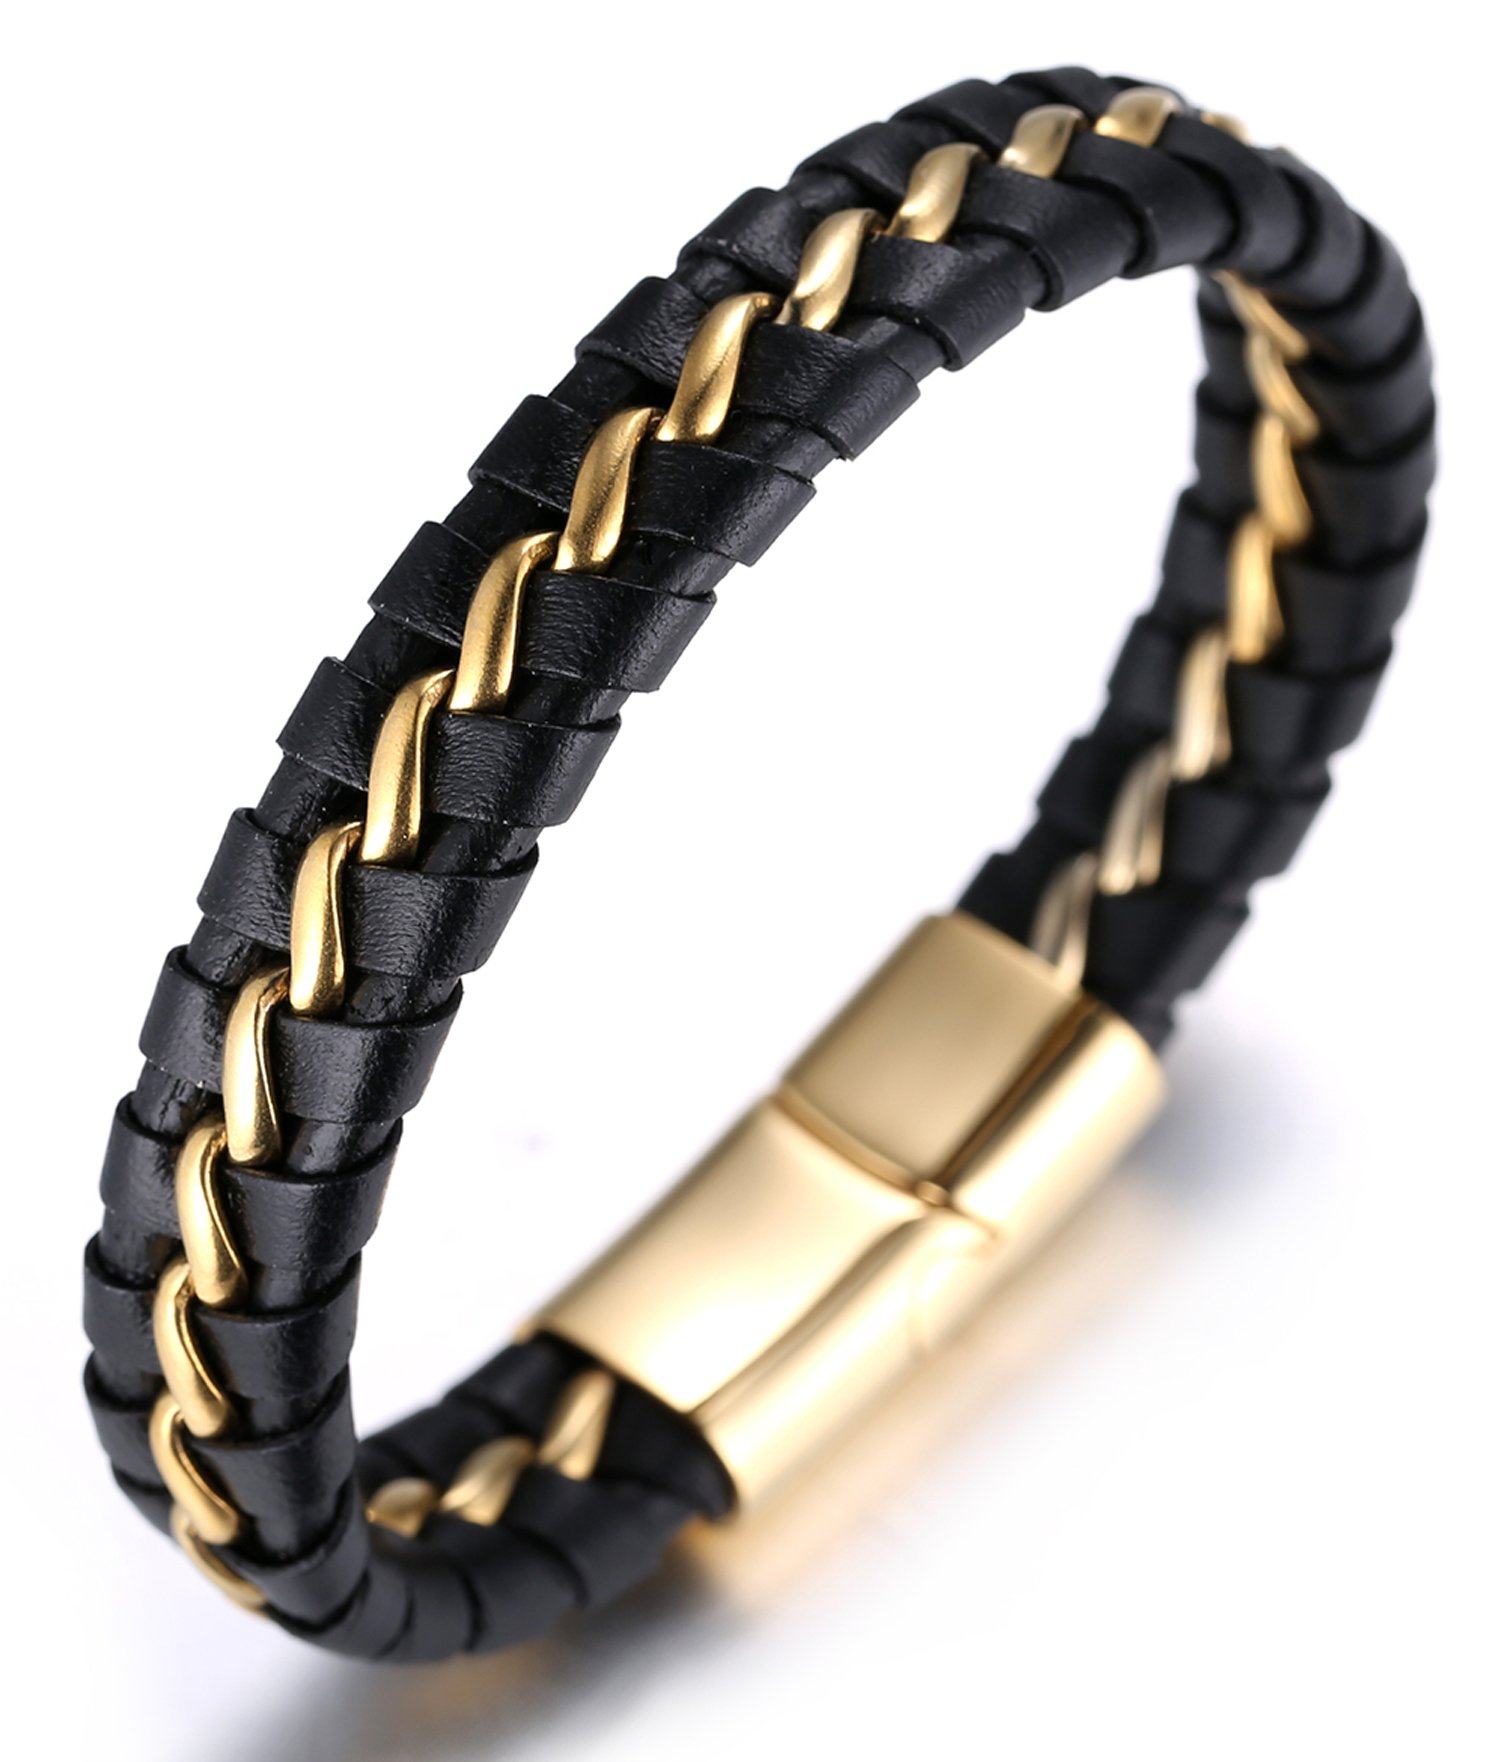 HALUKAKAH Plus ● Solo Silver/Honor Gold/Nightwatch Black ● Men's Genuine Leather Bracelet Titanium Chain Magnetic Clasp 21.5-23cm with Free Giftbox